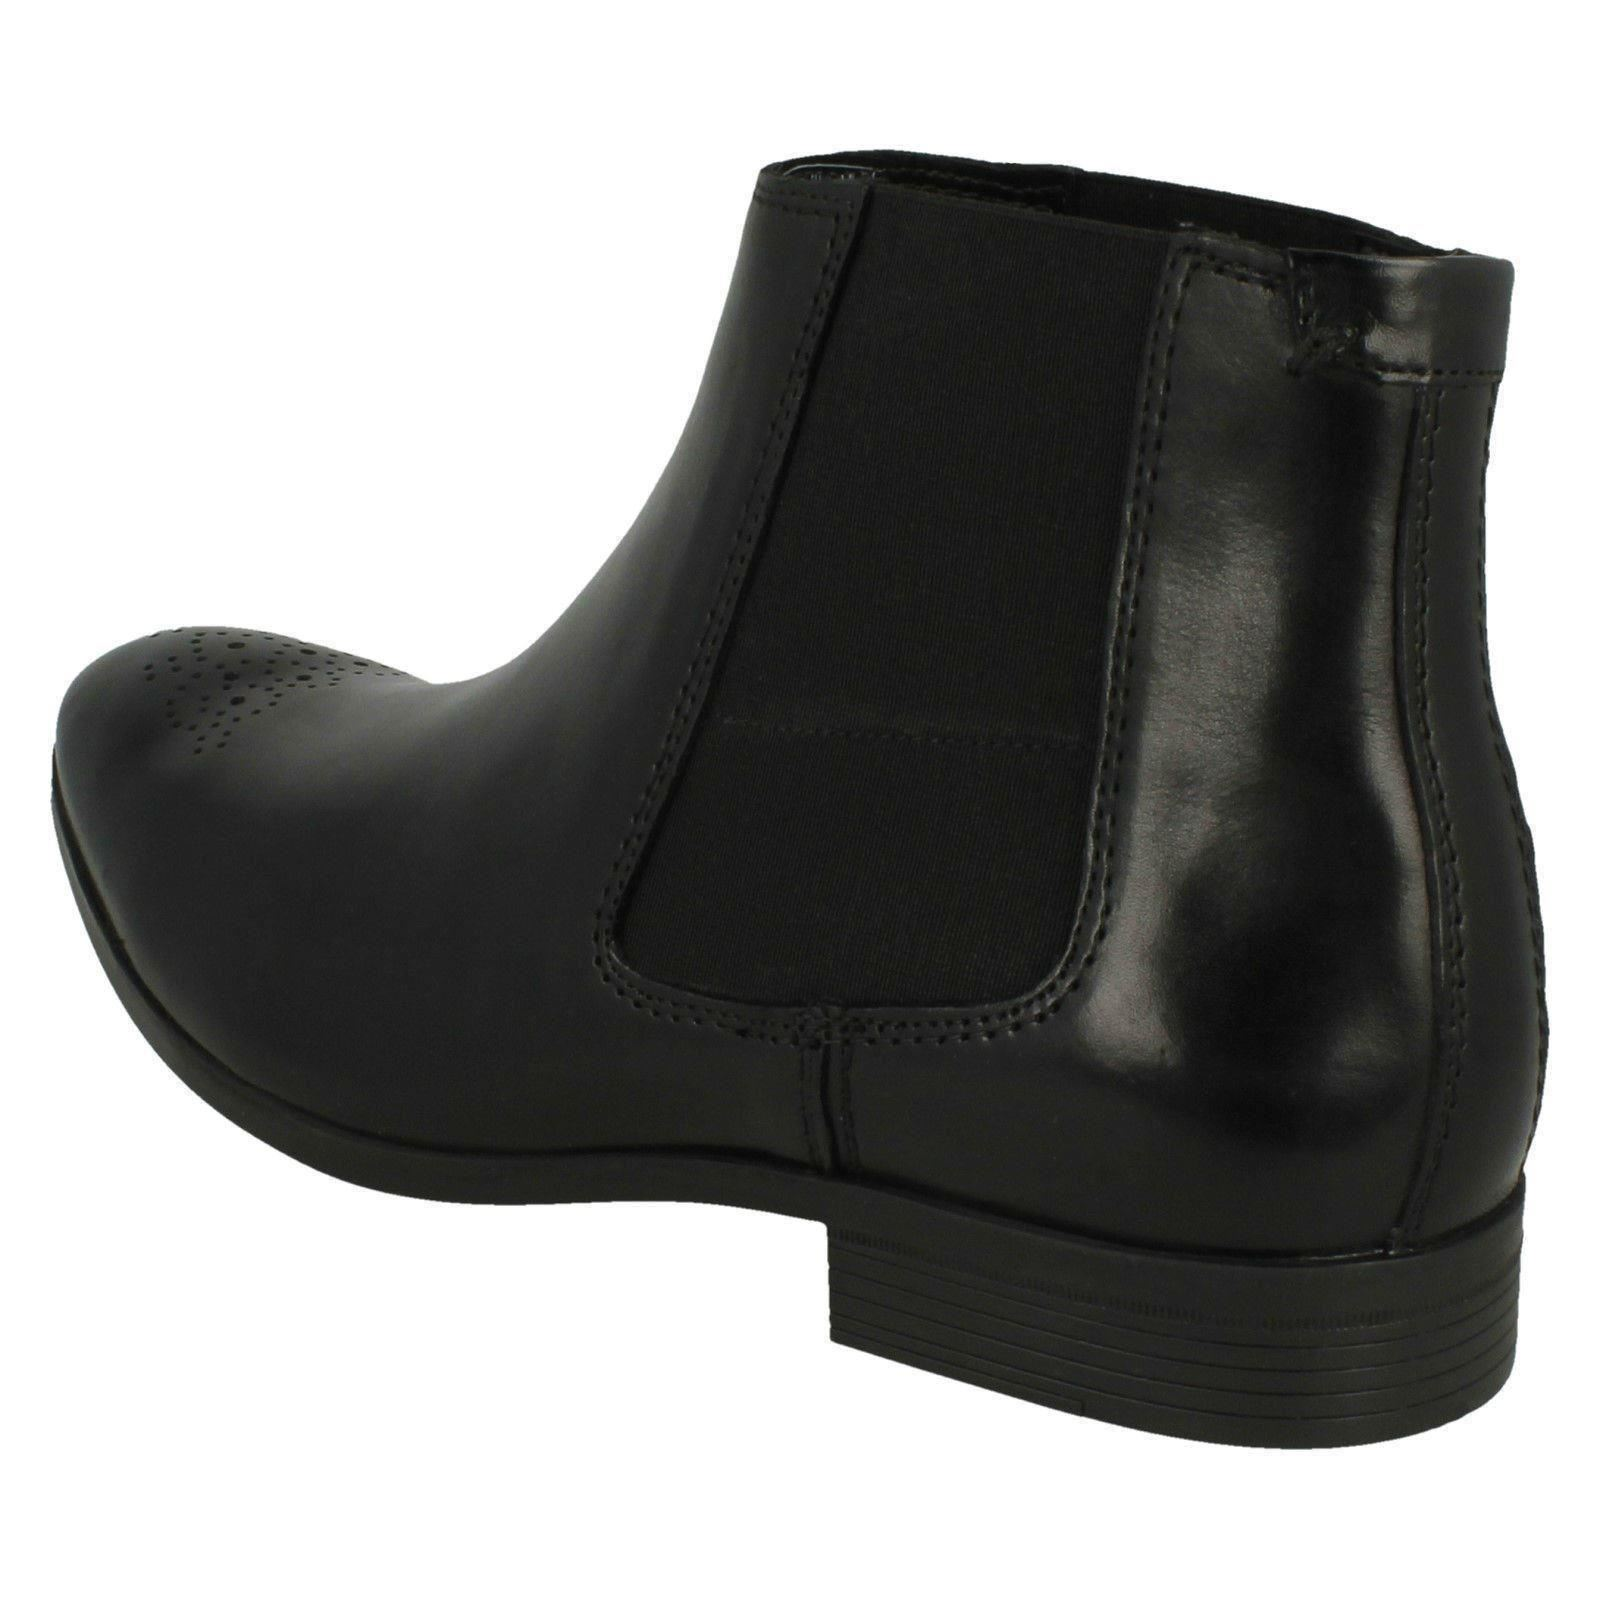 Details about Mens Clarks 'Gilmore chelsea' Black Leather Smart Pull On Chelsea Boots G Fit